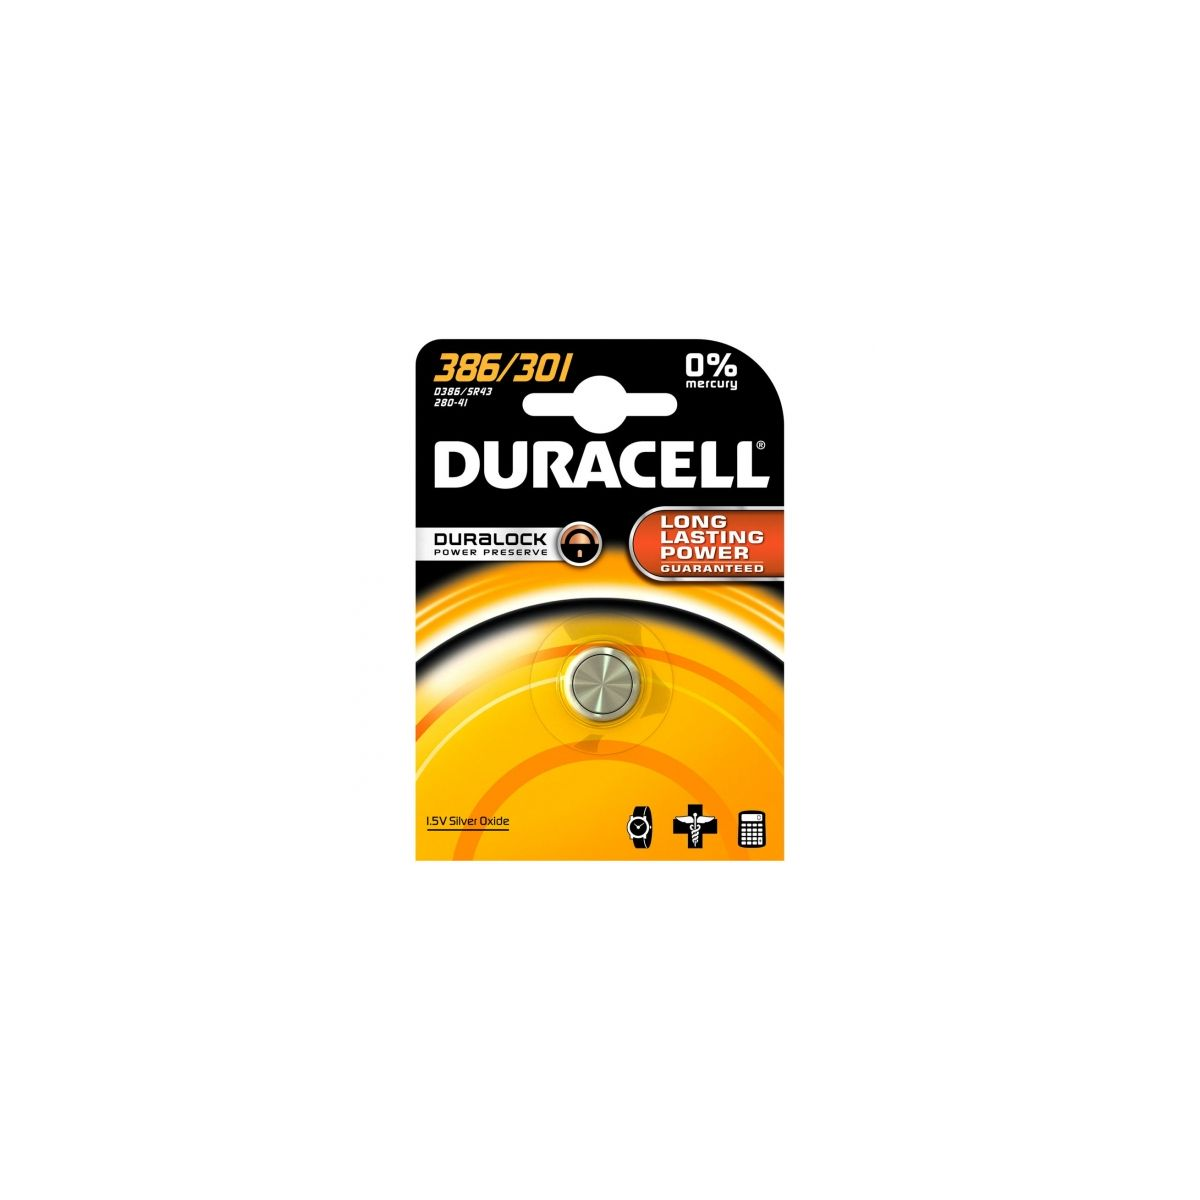 Pile DURACELL 386/301 (photo)